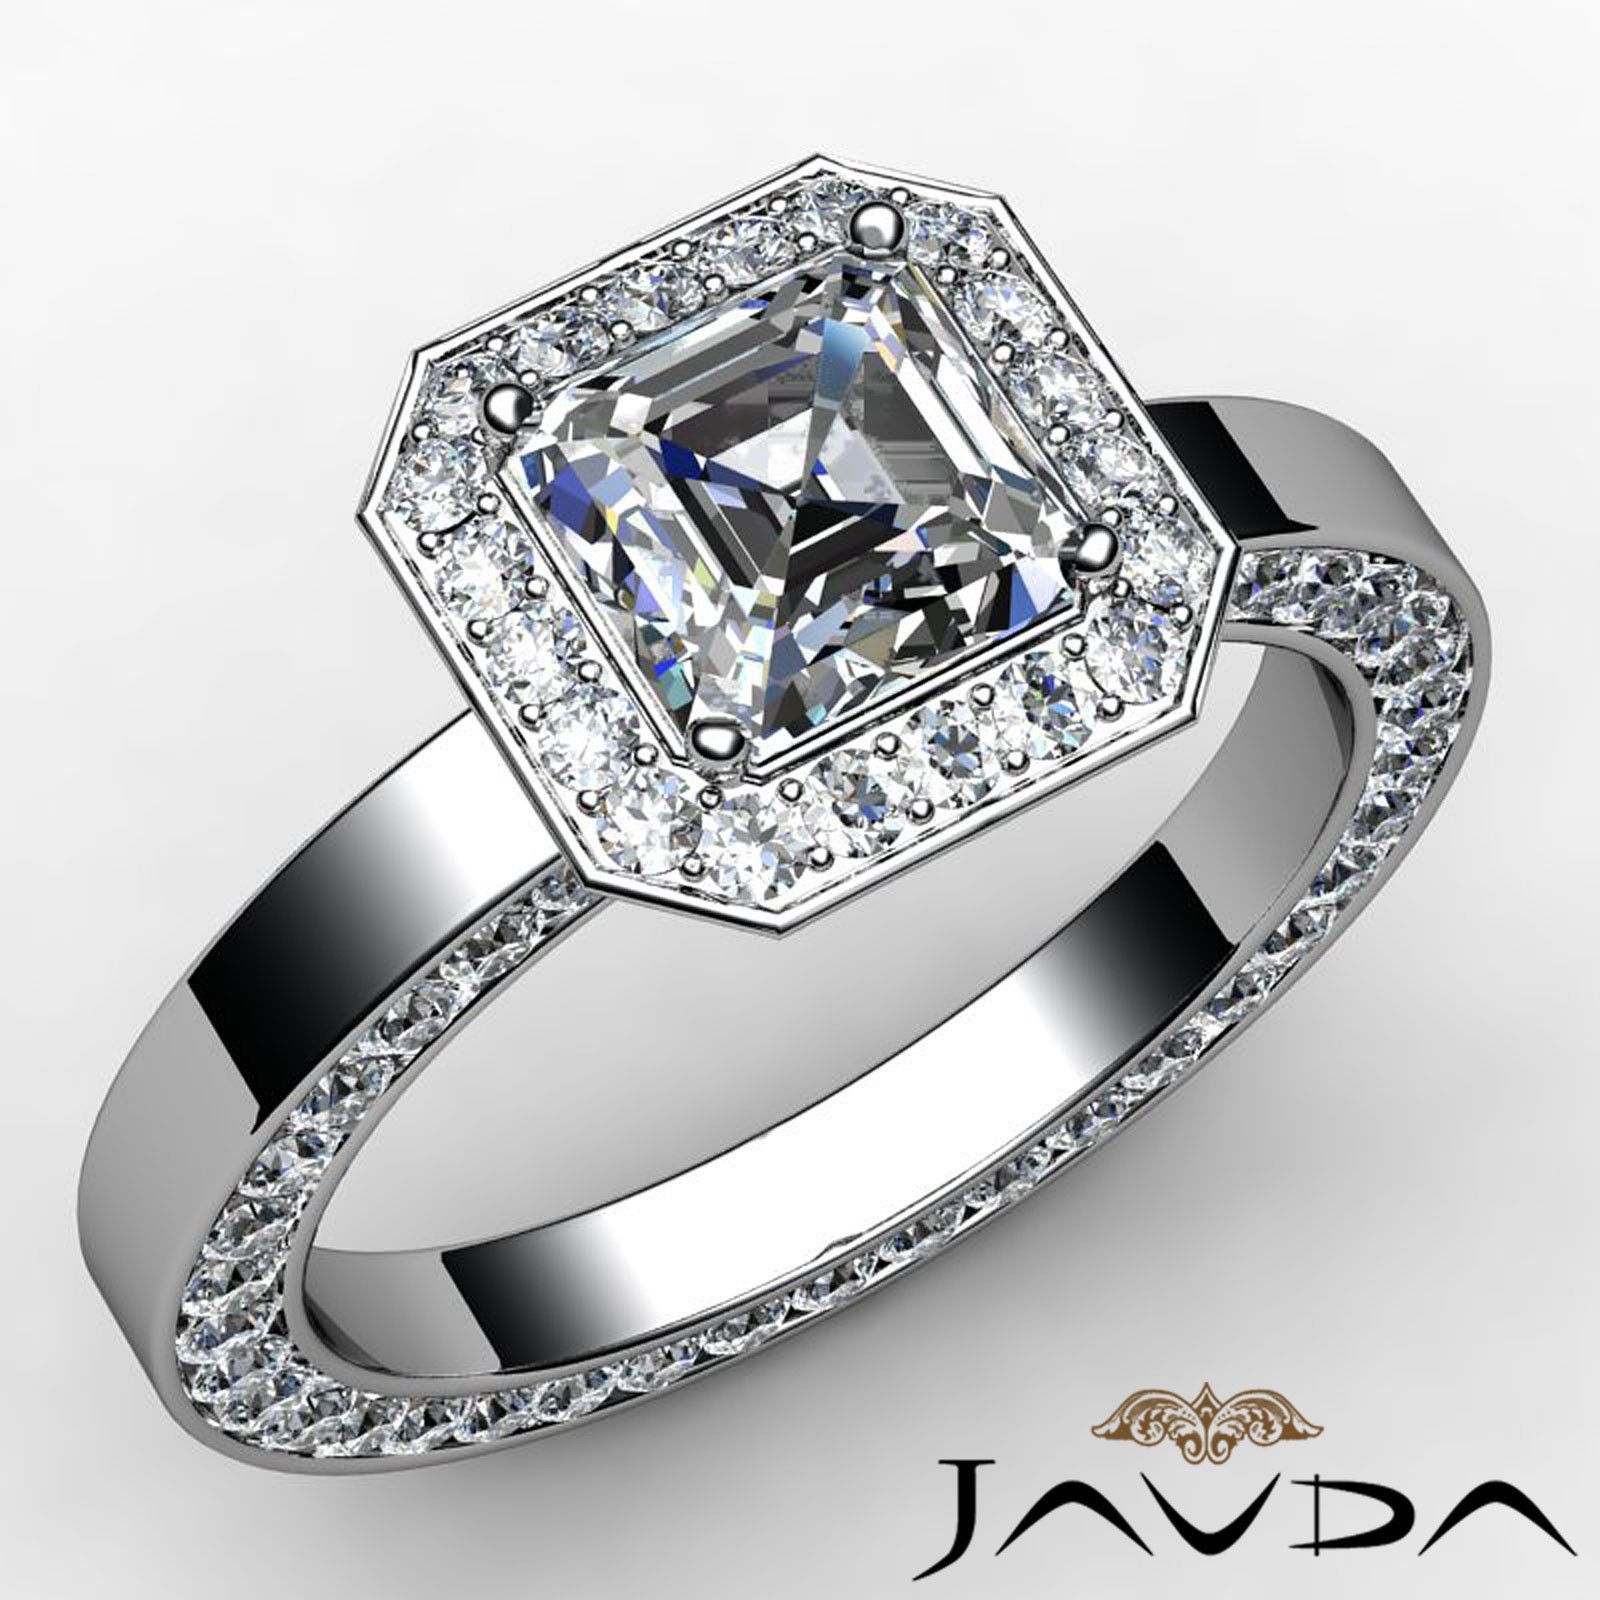 Womenus eternity asscher diamond pave engagement ring gia h vs